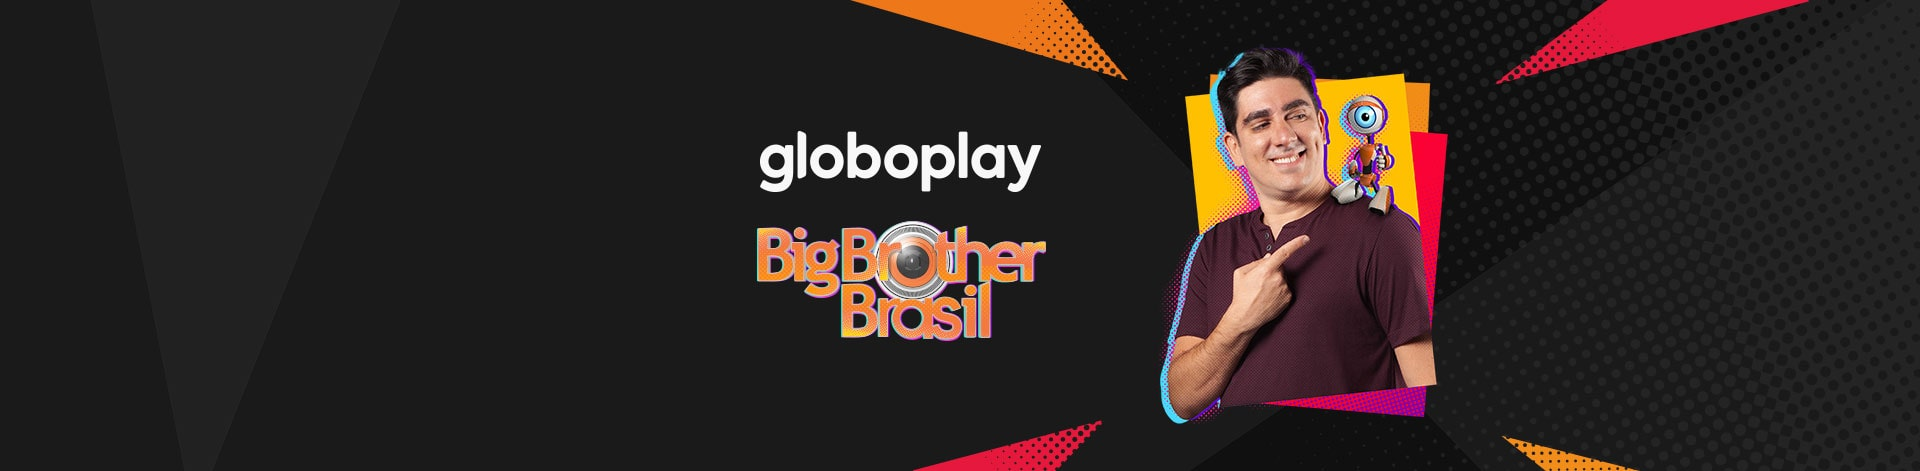 "Foto do ator Marcelo Adnet com o robozinho mascote do BBB. Lê-se: ""Globoplay. Big Brother Brasil.""."